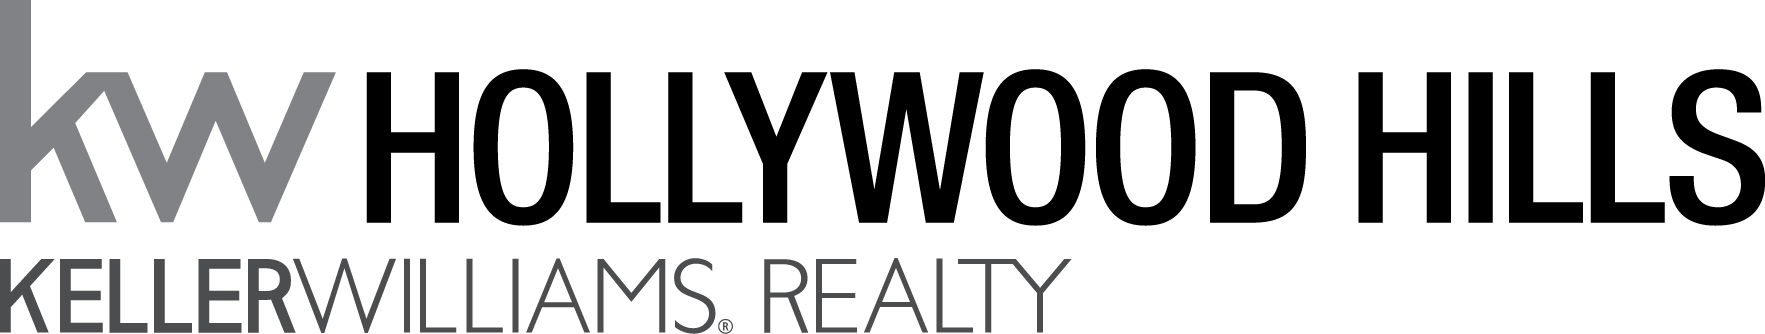 KellerWilliams_Realty_HollywoodHills_Logo_GRY.png